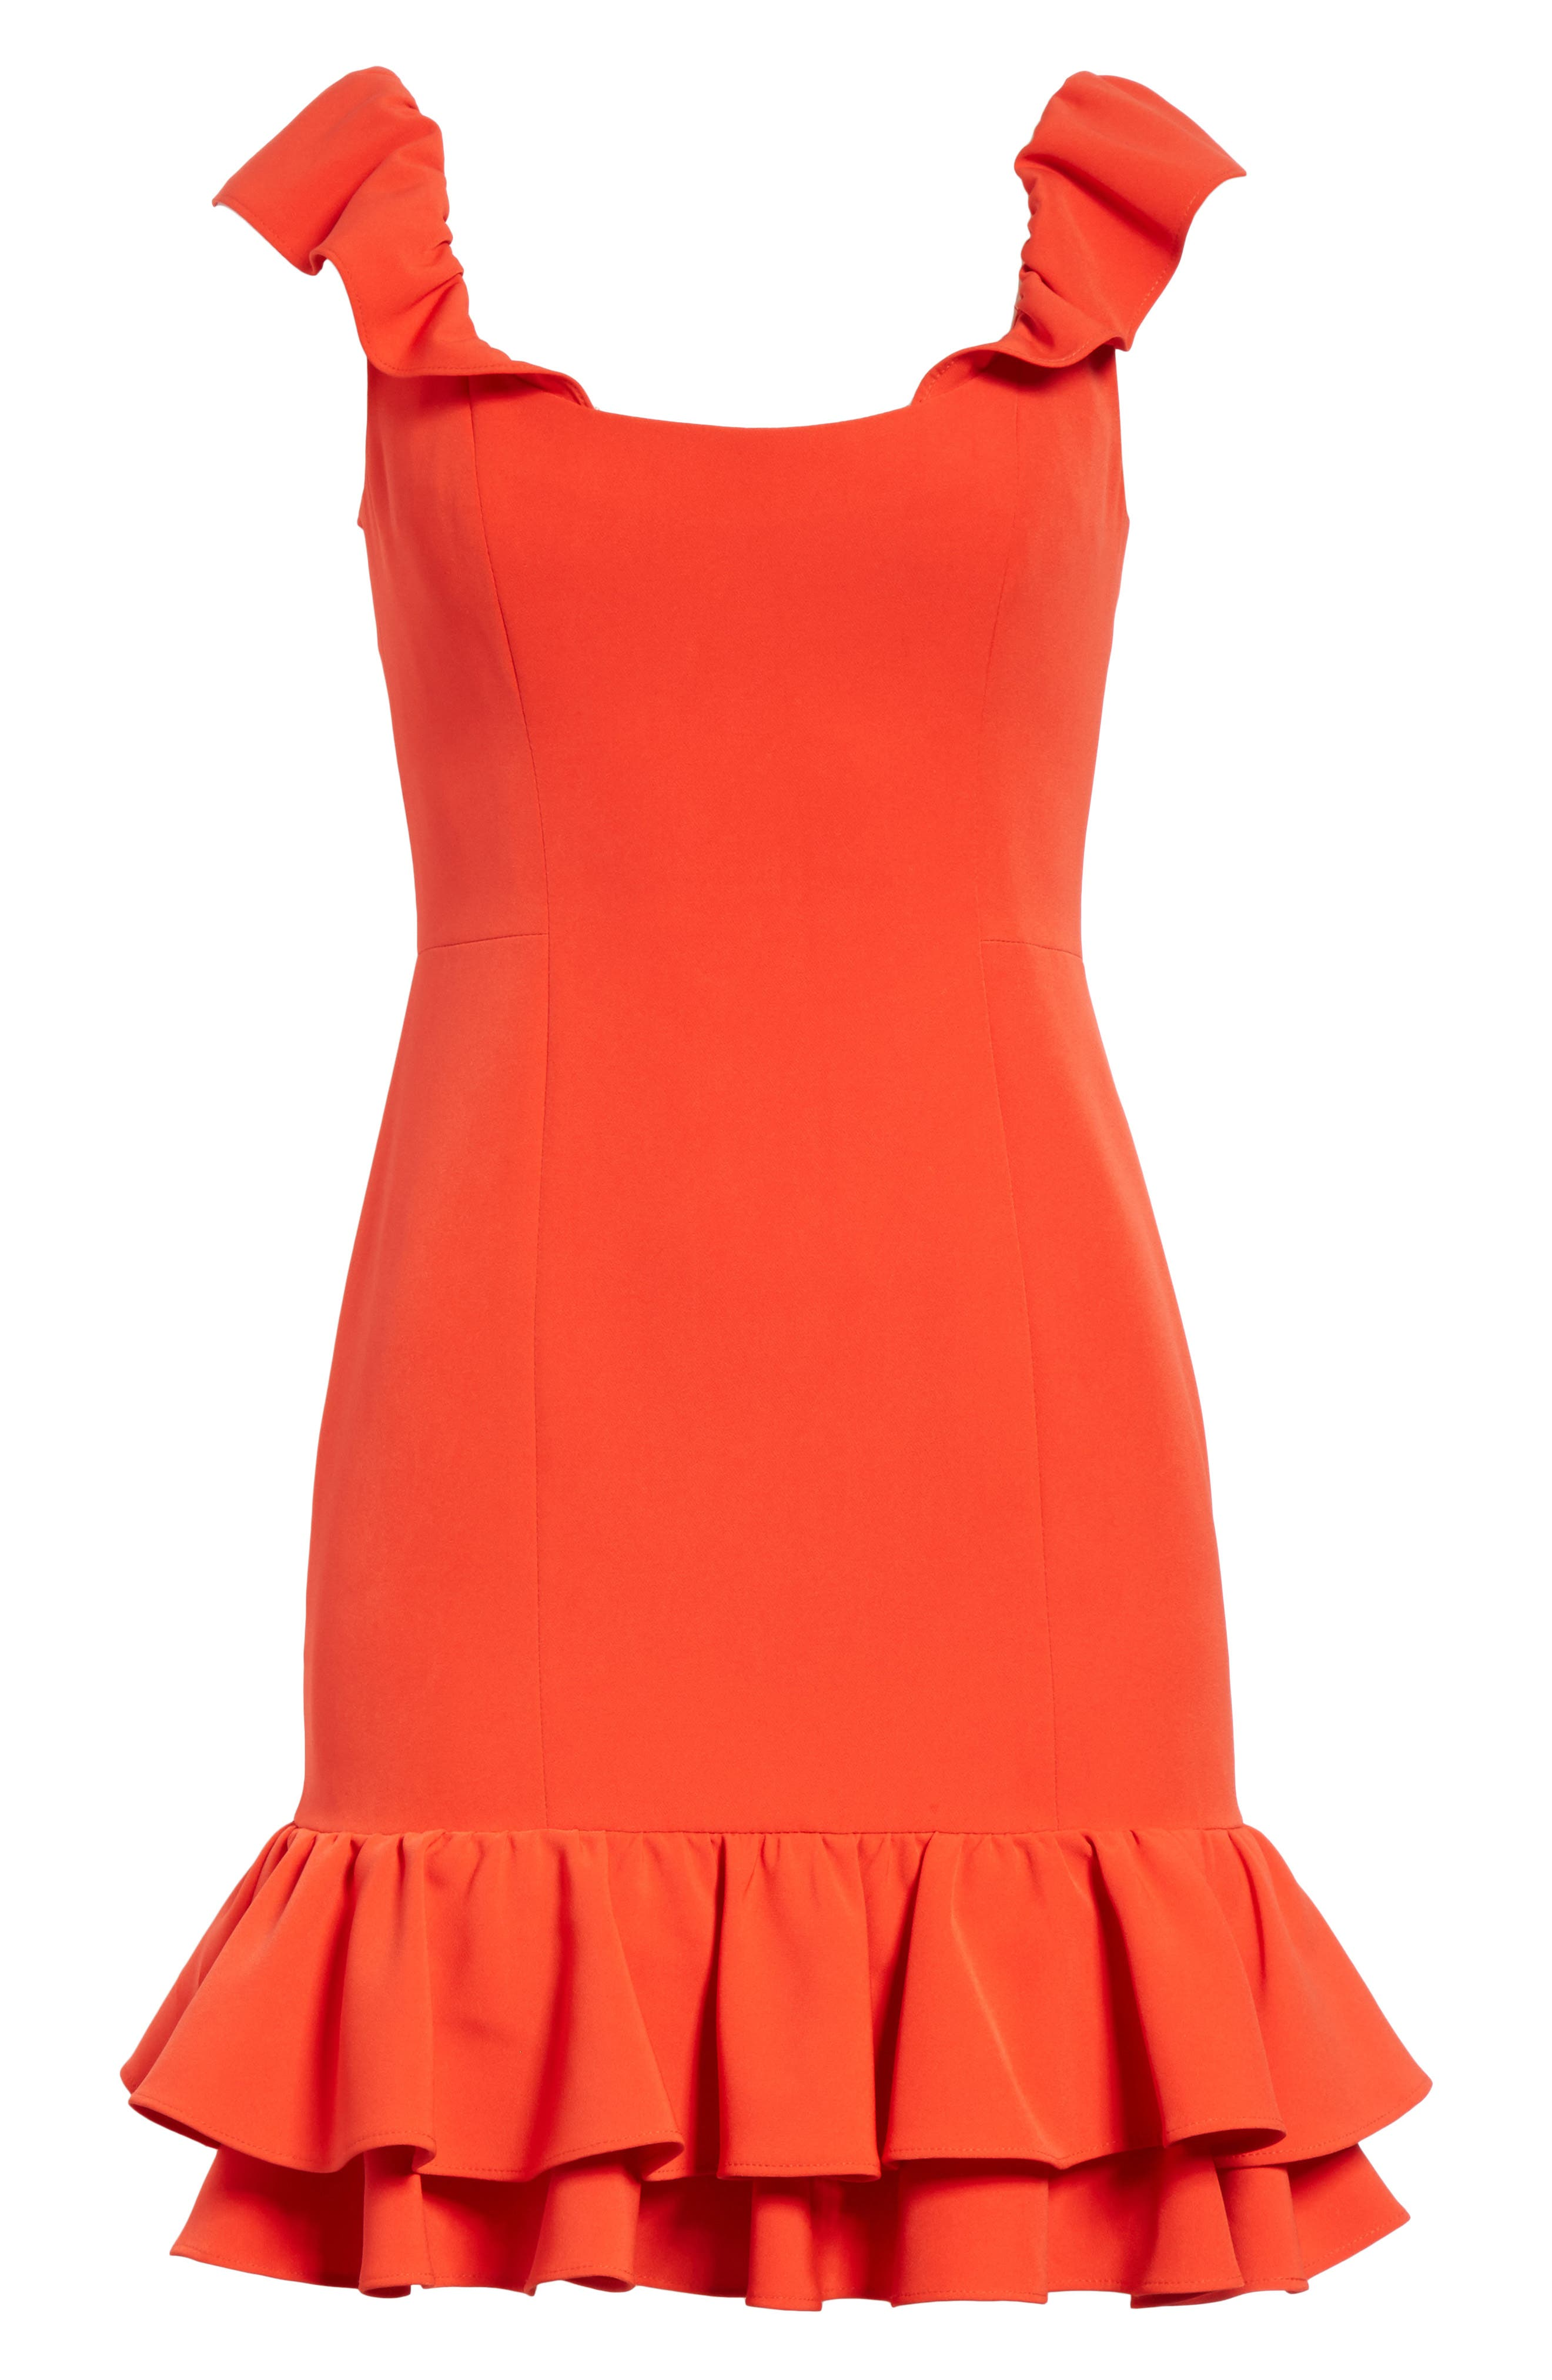 Savannah Ruffle Crepe Minidress,                             Alternate thumbnail 6, color,                             Tomato